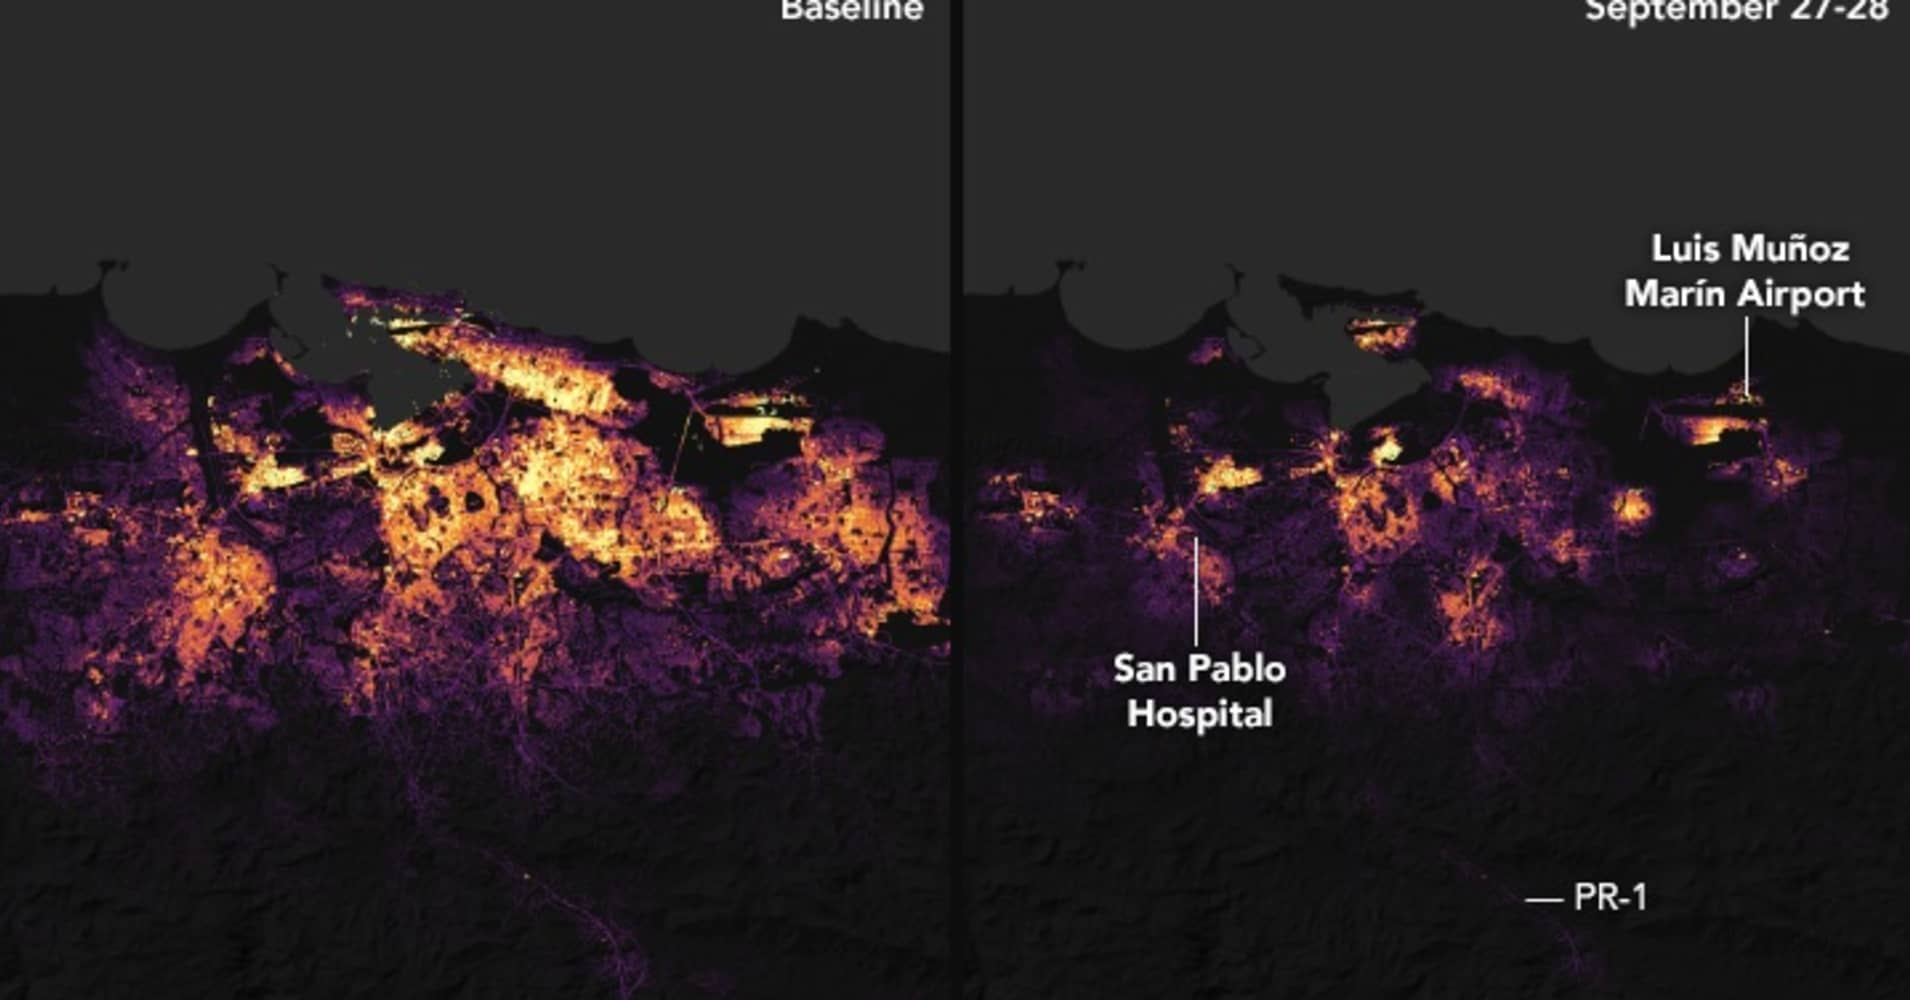 For the first time ever, NASA used its Black Marble technology to aid in disaster response. The image shows electric activity before and after Hurricane Maria devastated Puerto Rico.